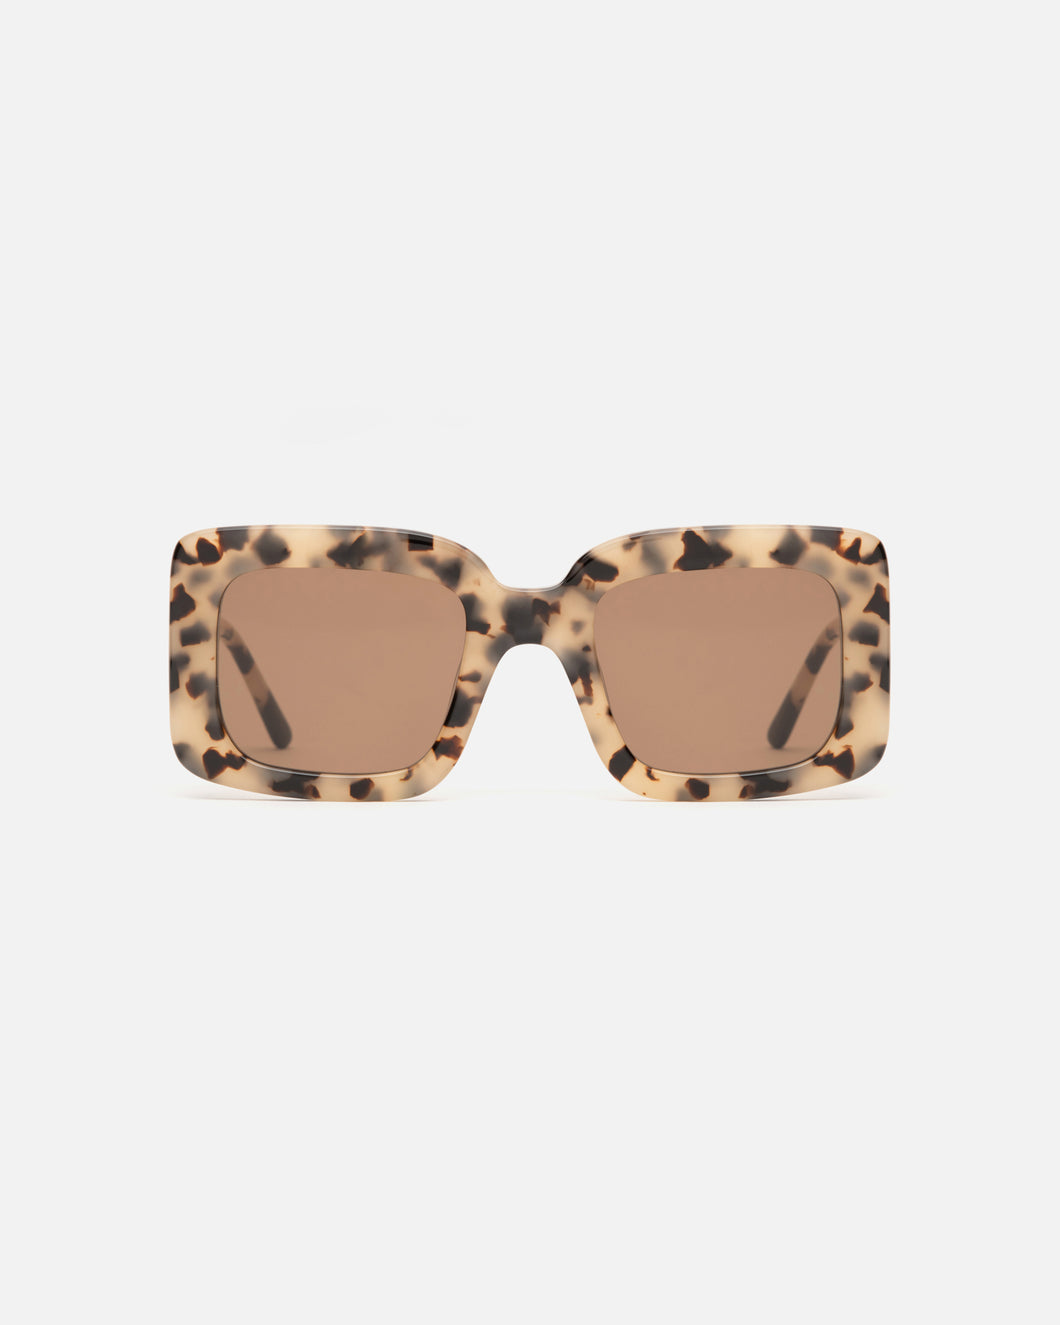 Lu Goldie Mia oversize square Sunglasses in brown tortoise shell acetate with brown lenses, front image